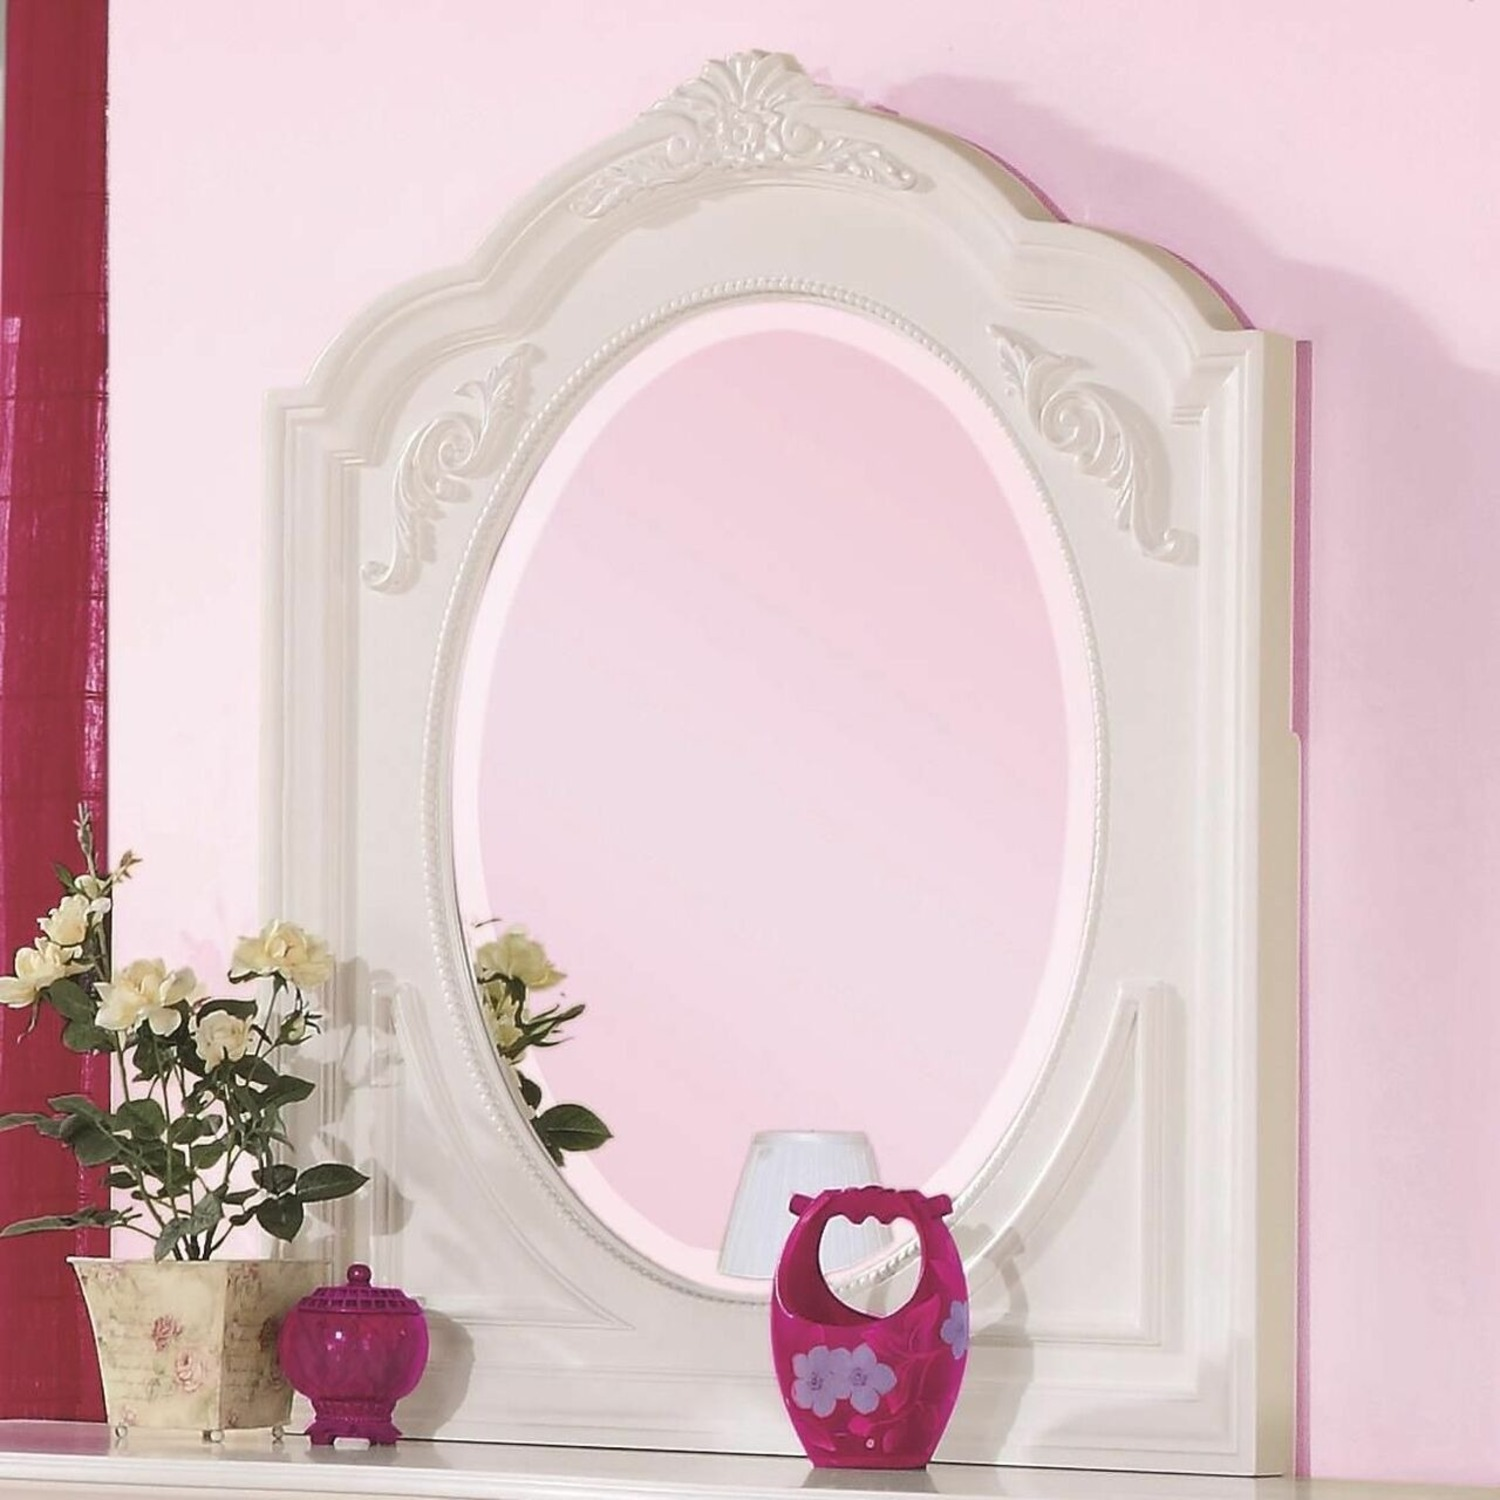 Opulent Style Mirror In White Frame Finish - image-1